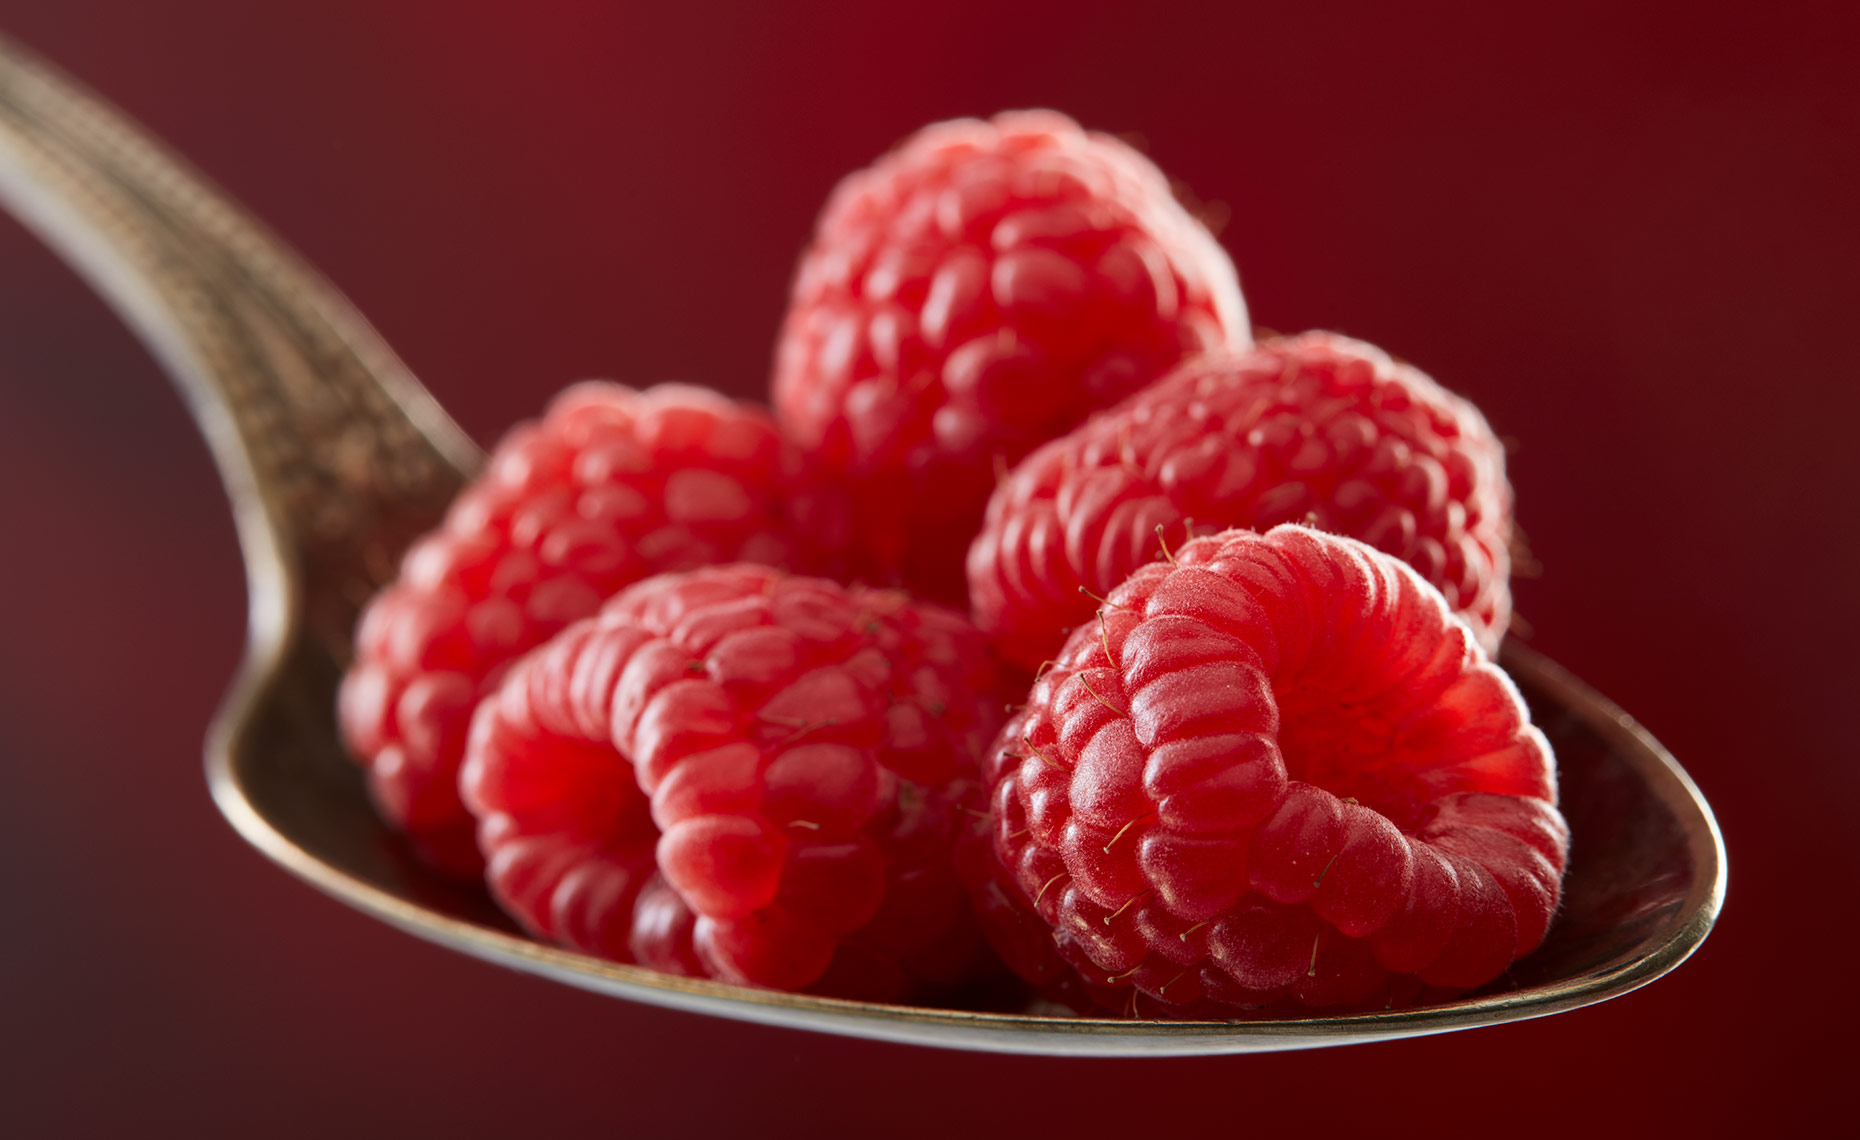 appetizers-fruits-vegetables-photographers-raspberries-34